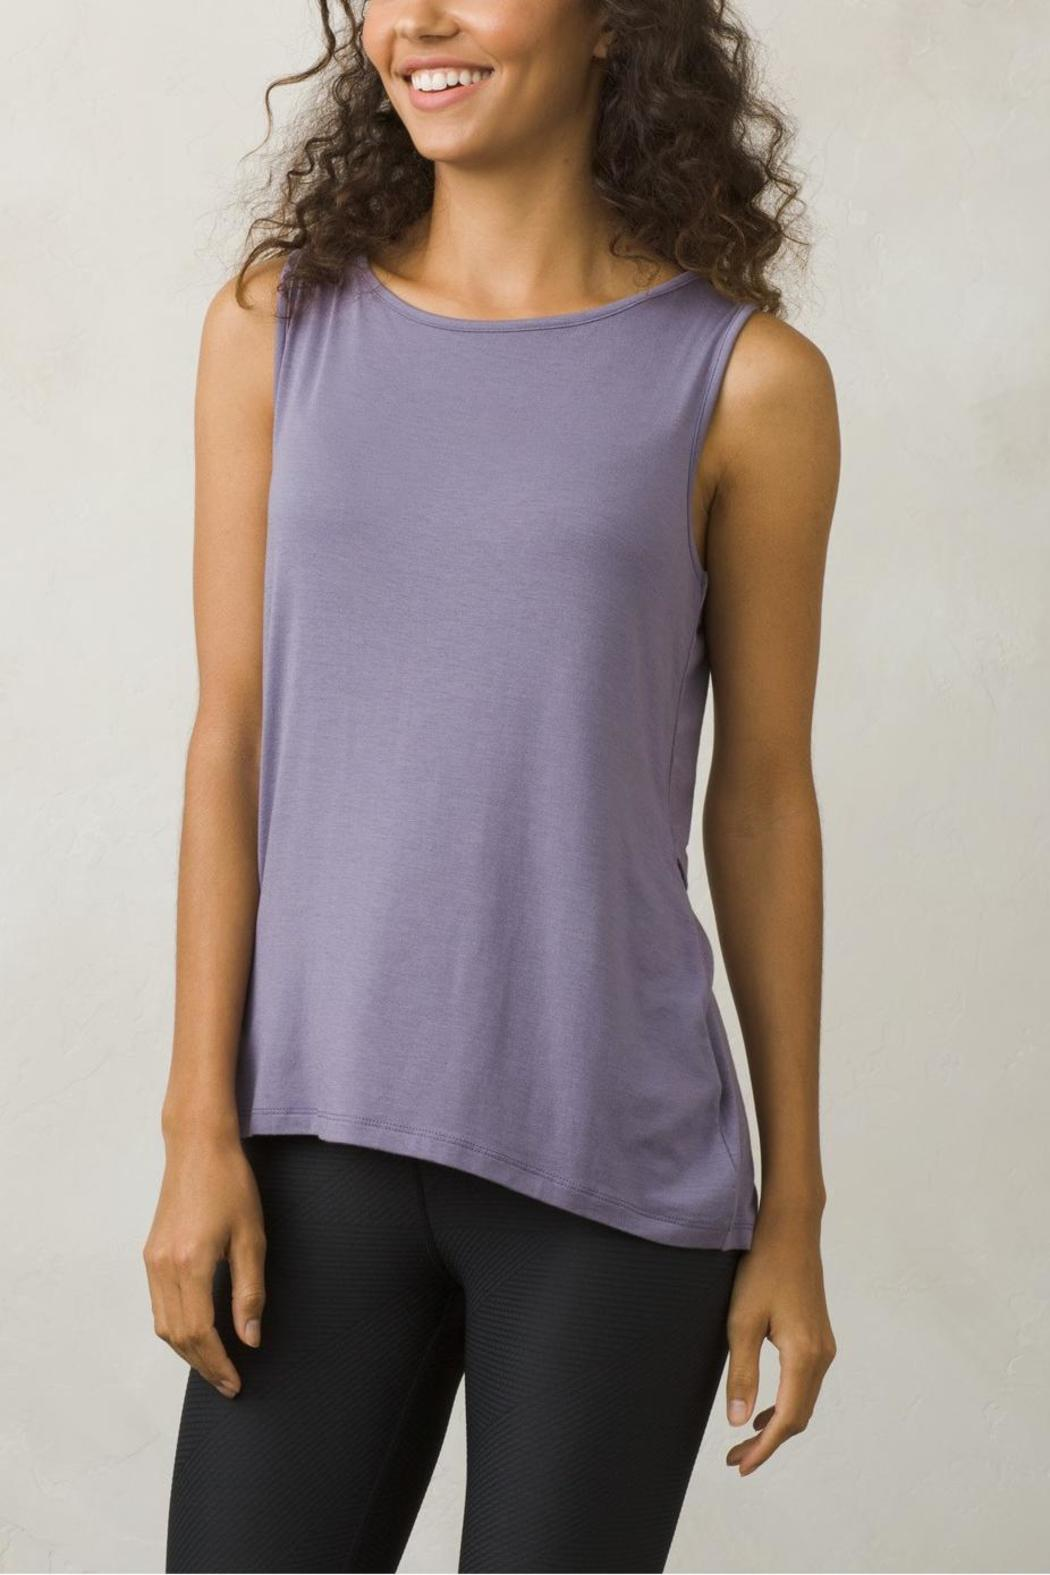 Prana Sleeveless Top - Main Image